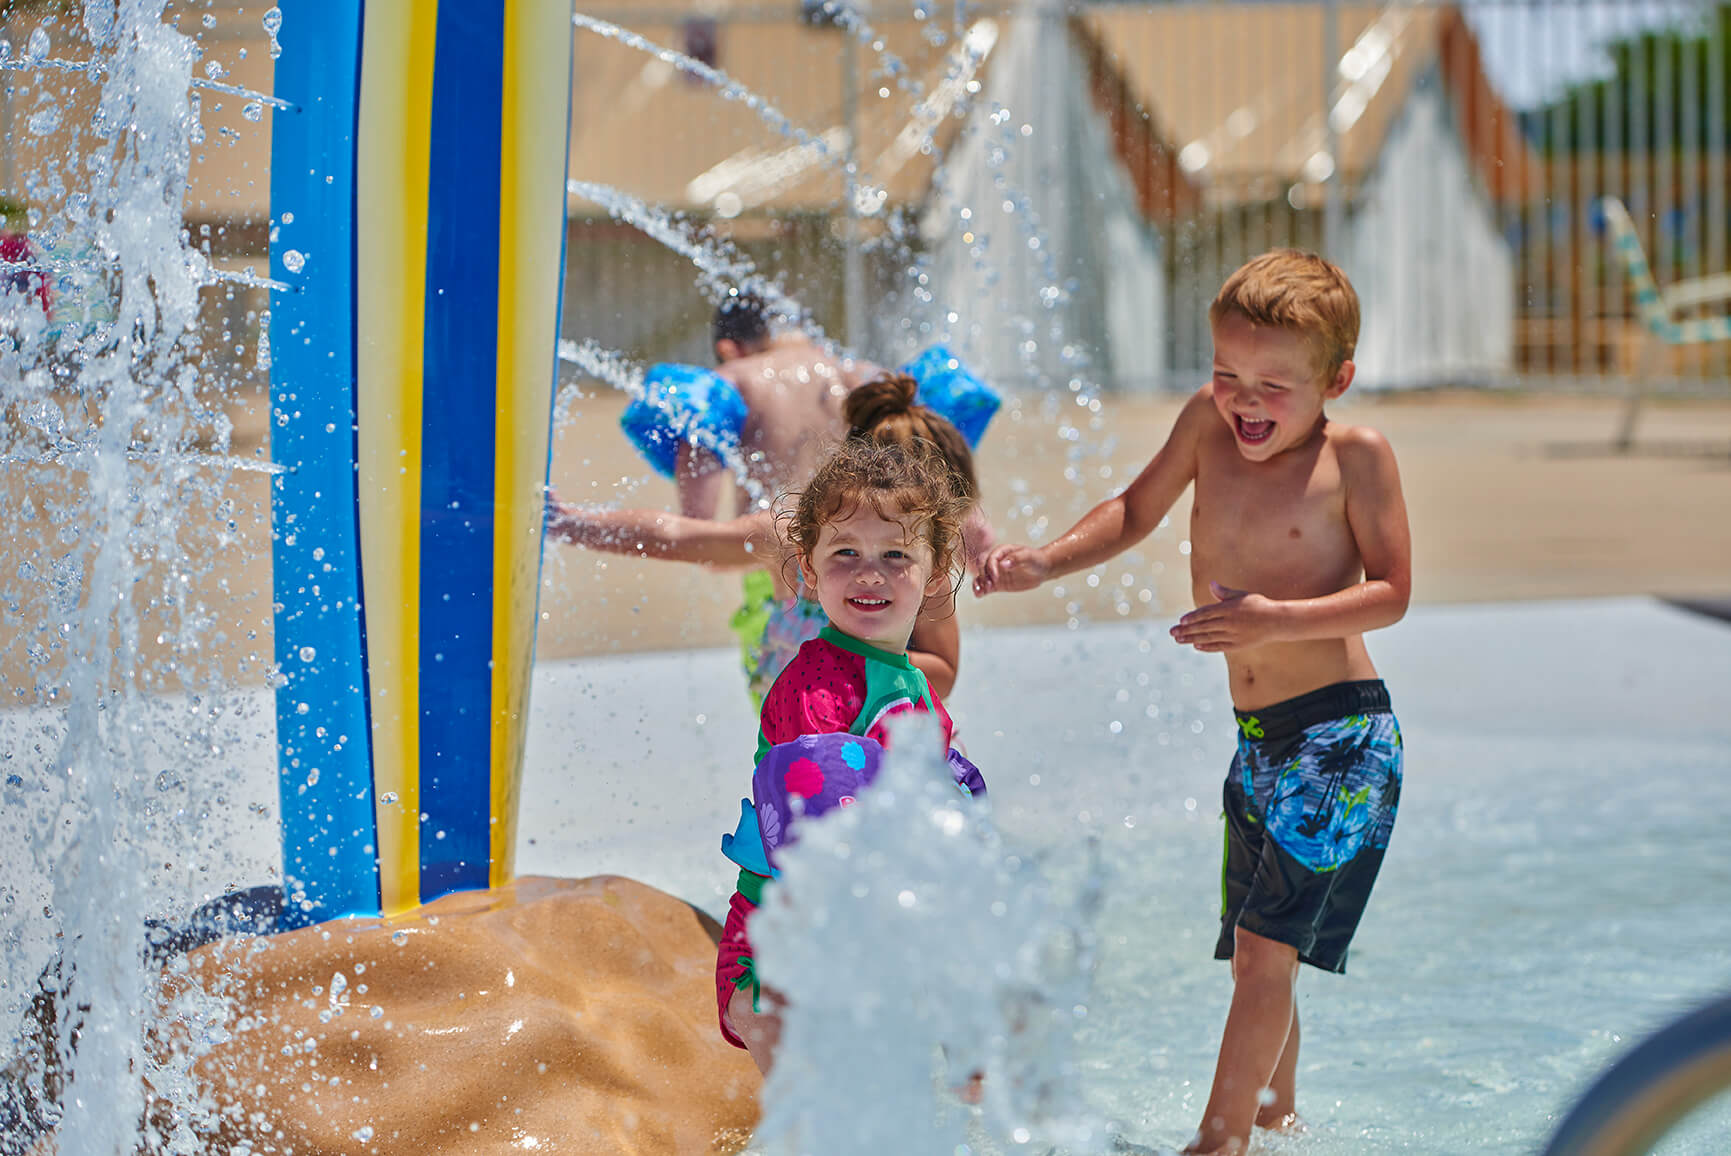 Children Playing at Water Park